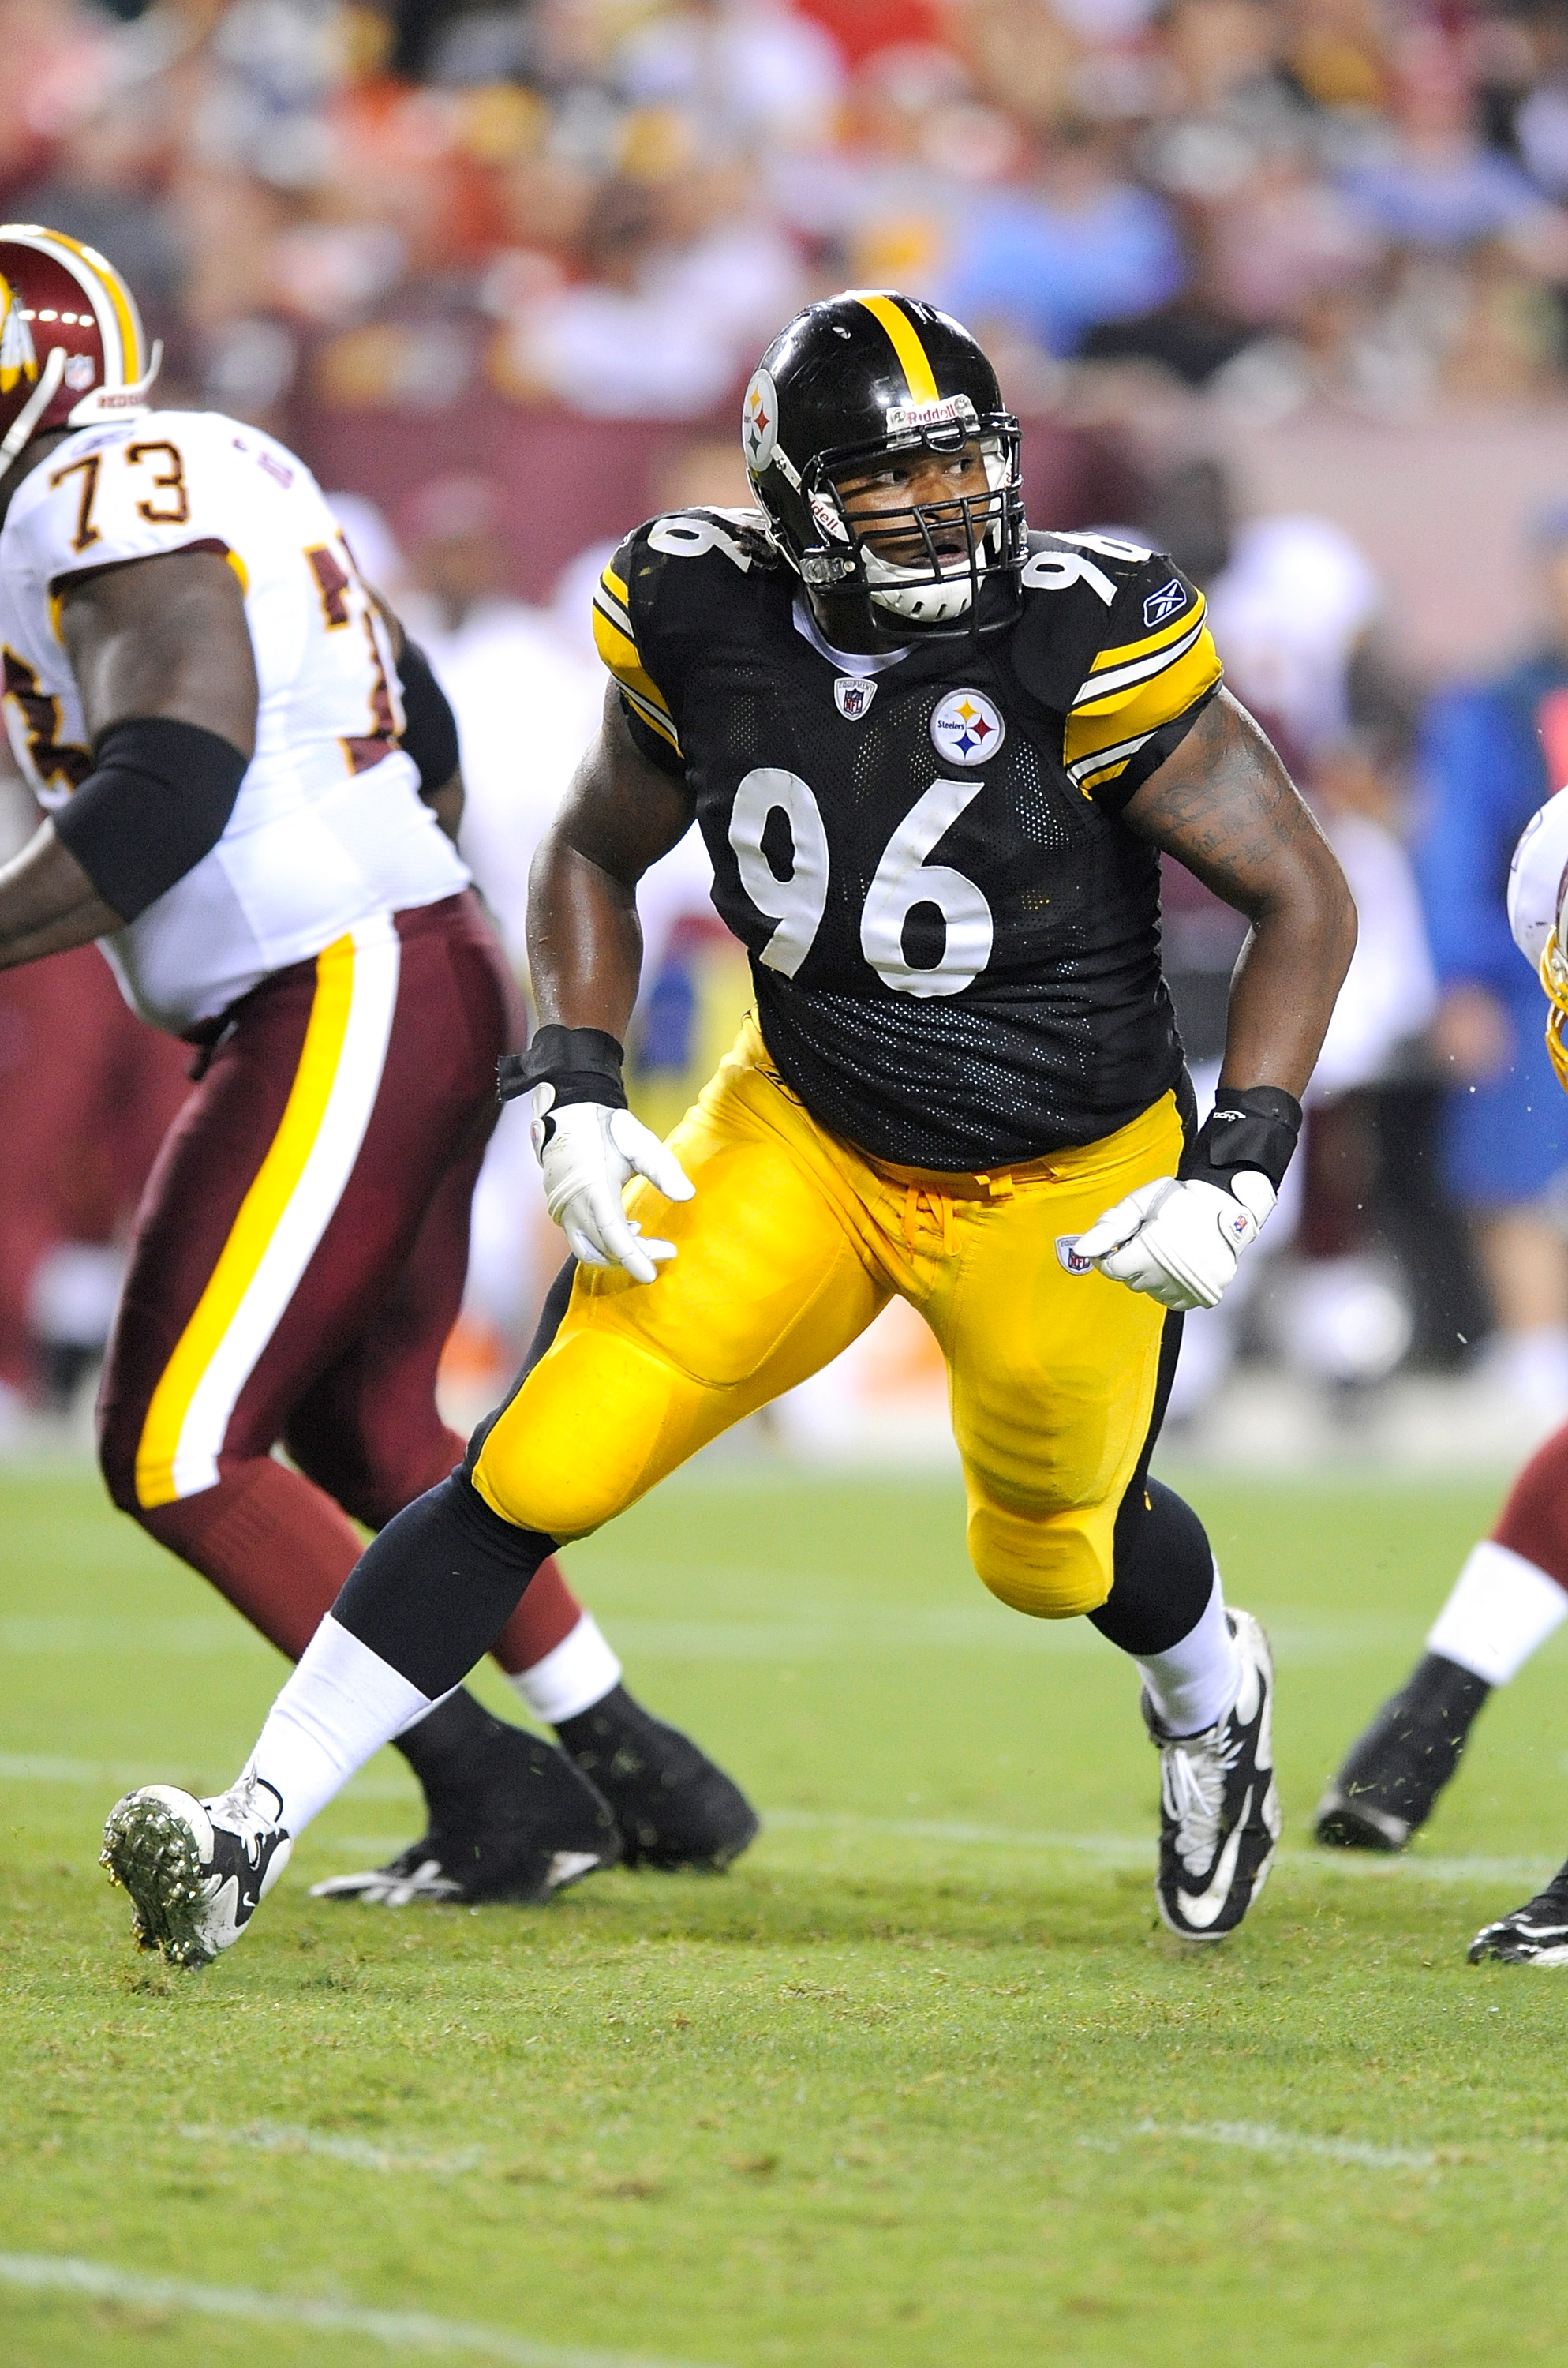 LANDOVER, MD - AUGUST 22:  Ziggy Hood #96 of the Pittsburgh Steelers rushes the quarterback during the game against the Washington Redskins at Fed Ex Field on August 22, 2009 in Landover, Maryland.  (Photo by Greg Fiume/Getty Images)